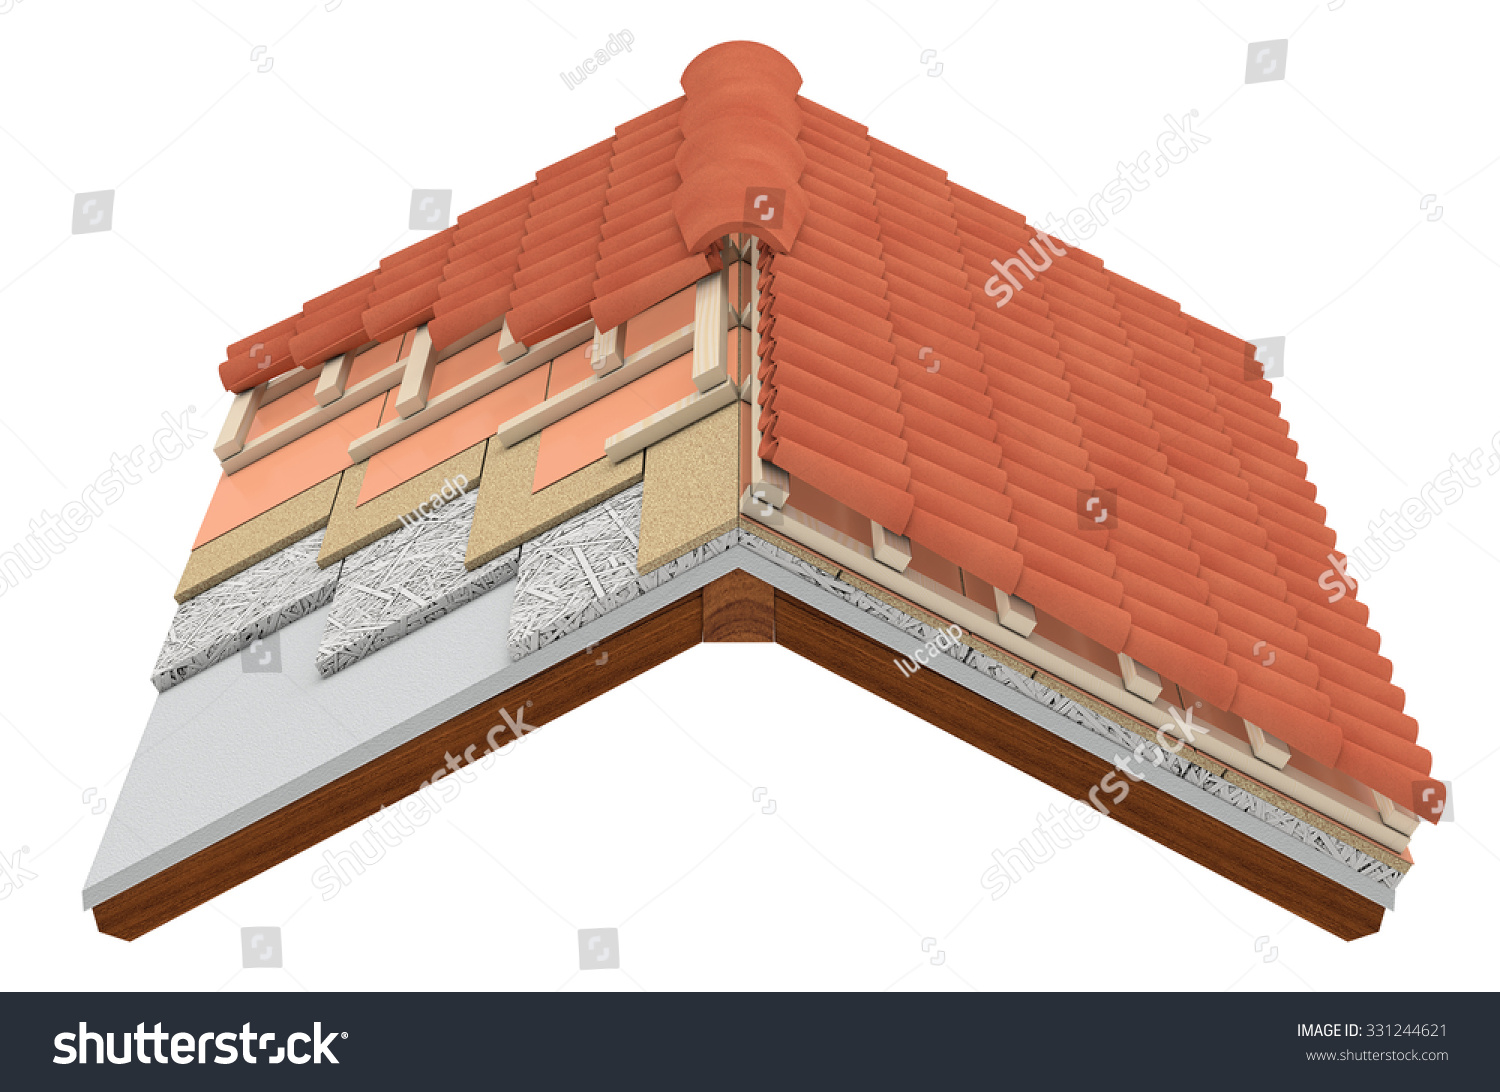 Thermal Insulation House Energy Efficiency Concept Isolated On White - Cross section of a house roof all the layers are visible thermal insulation